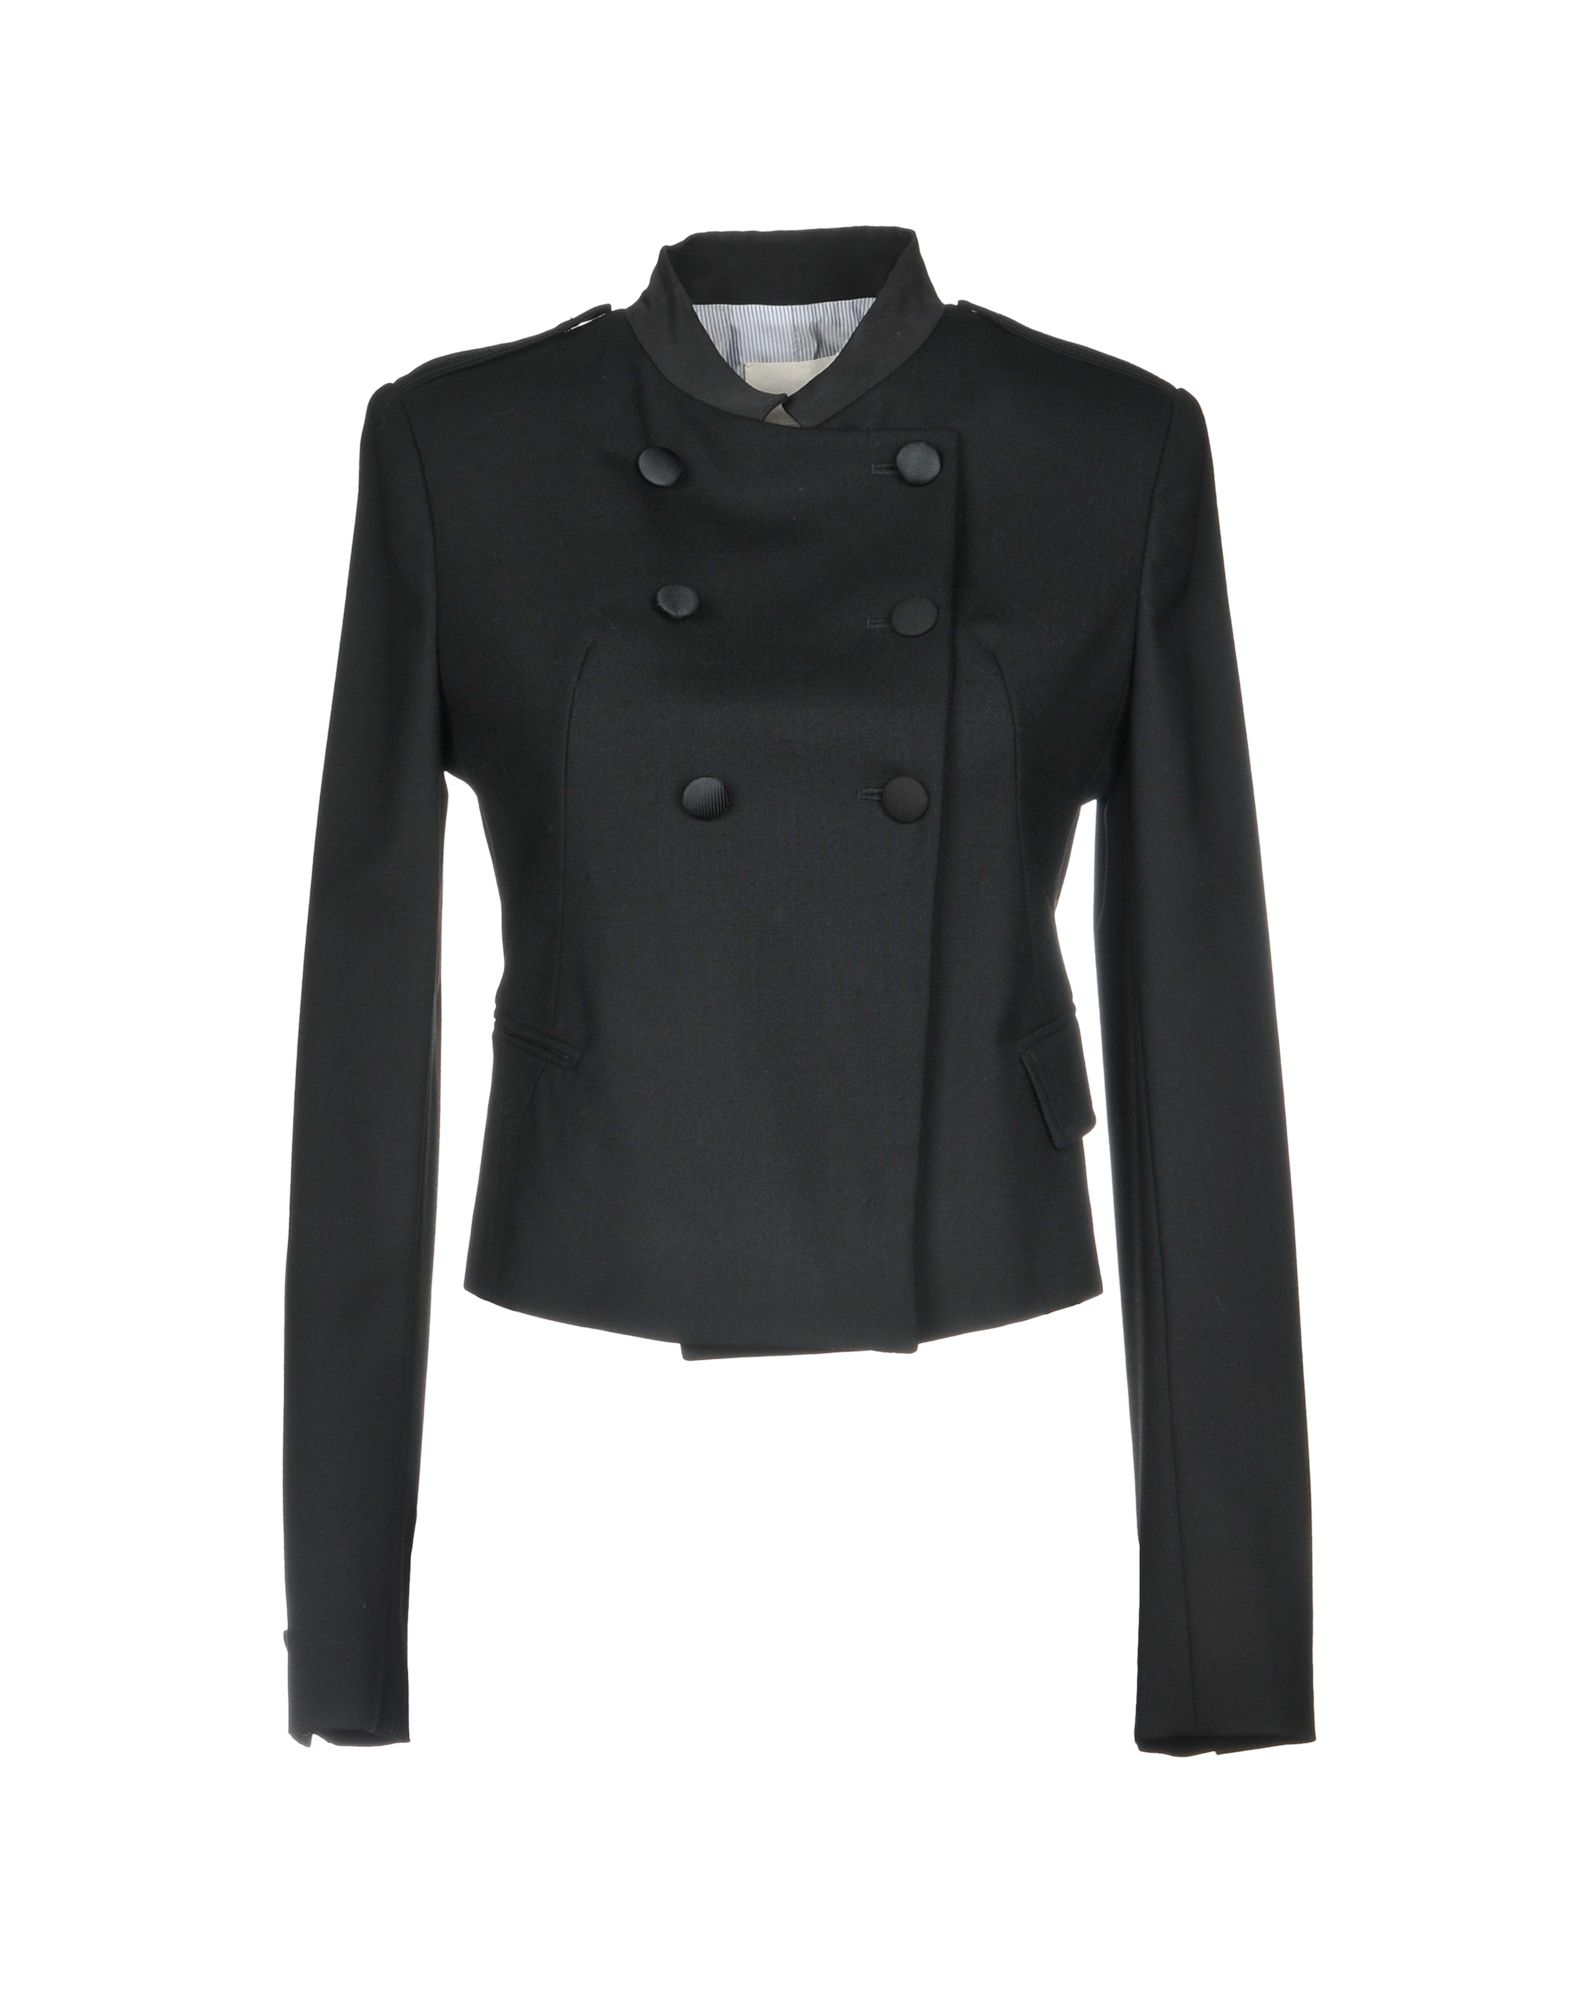 BAND OF OUTSIDERS Blazer in Black